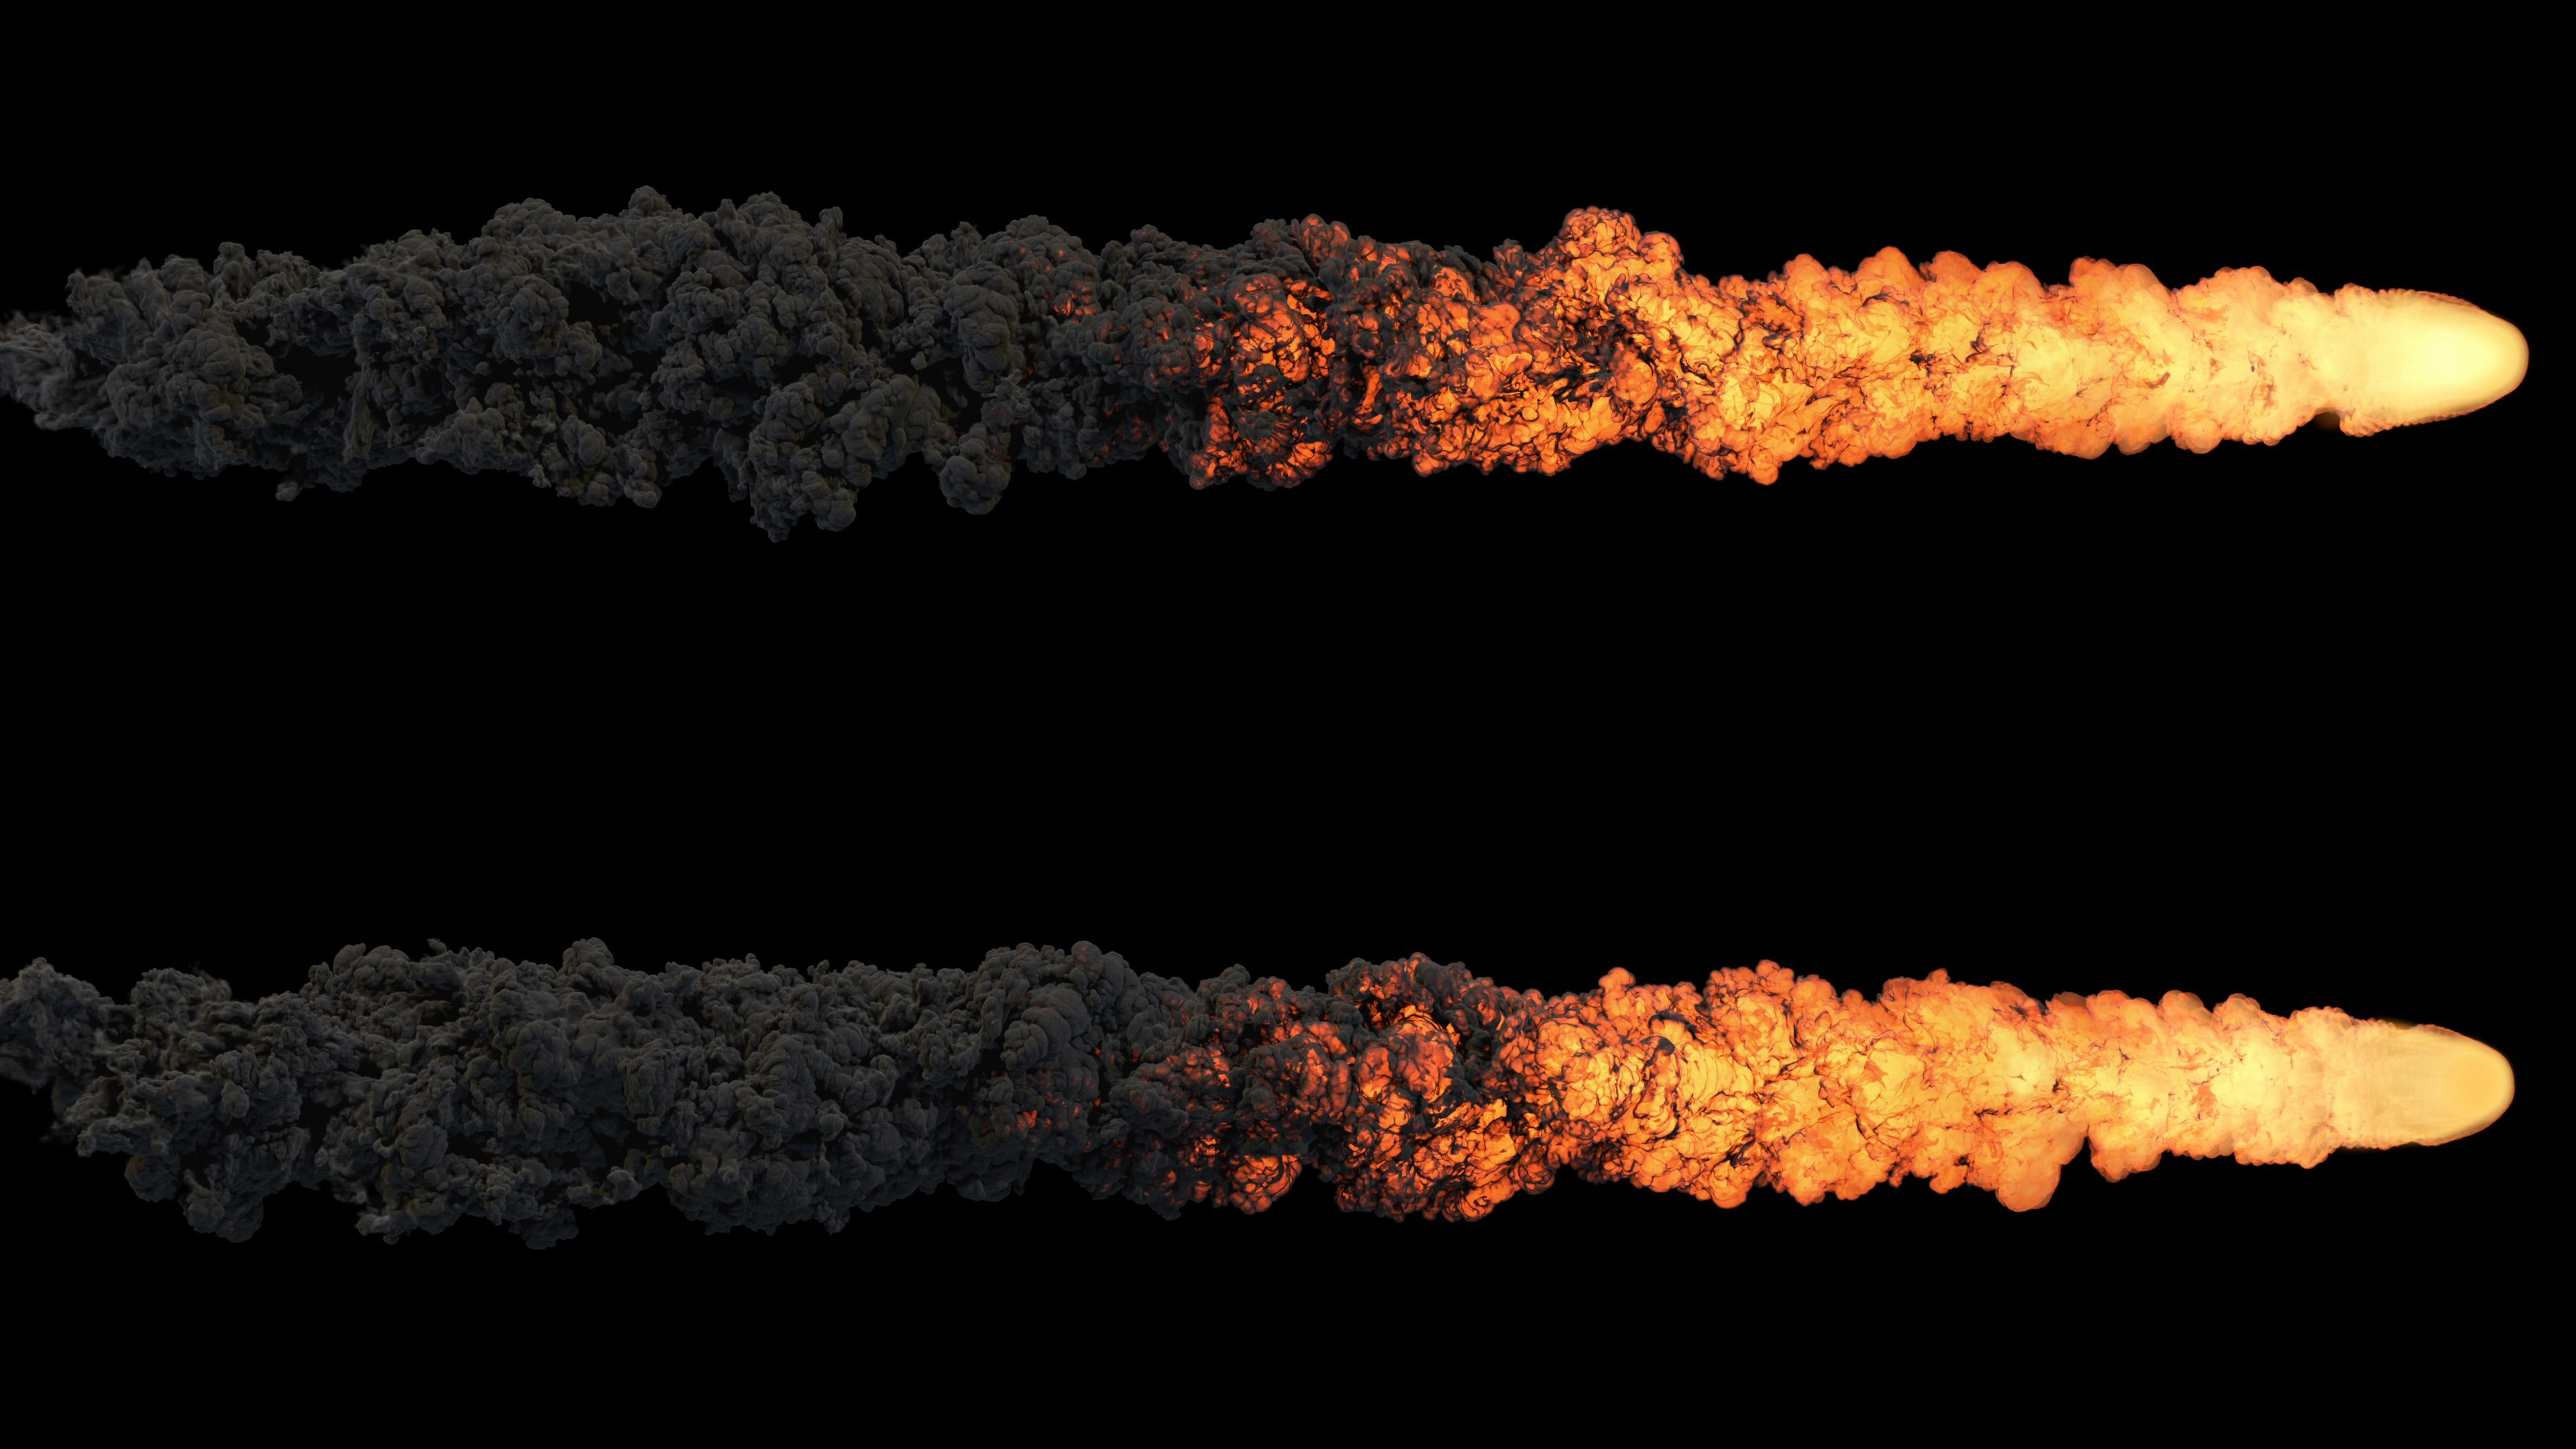 Meteor Or Asteroid Trail Fire And Smoke With Alpha Mask Stock Footage Trail Fire Meteor Asteroid Fire Image Design Illustration Design